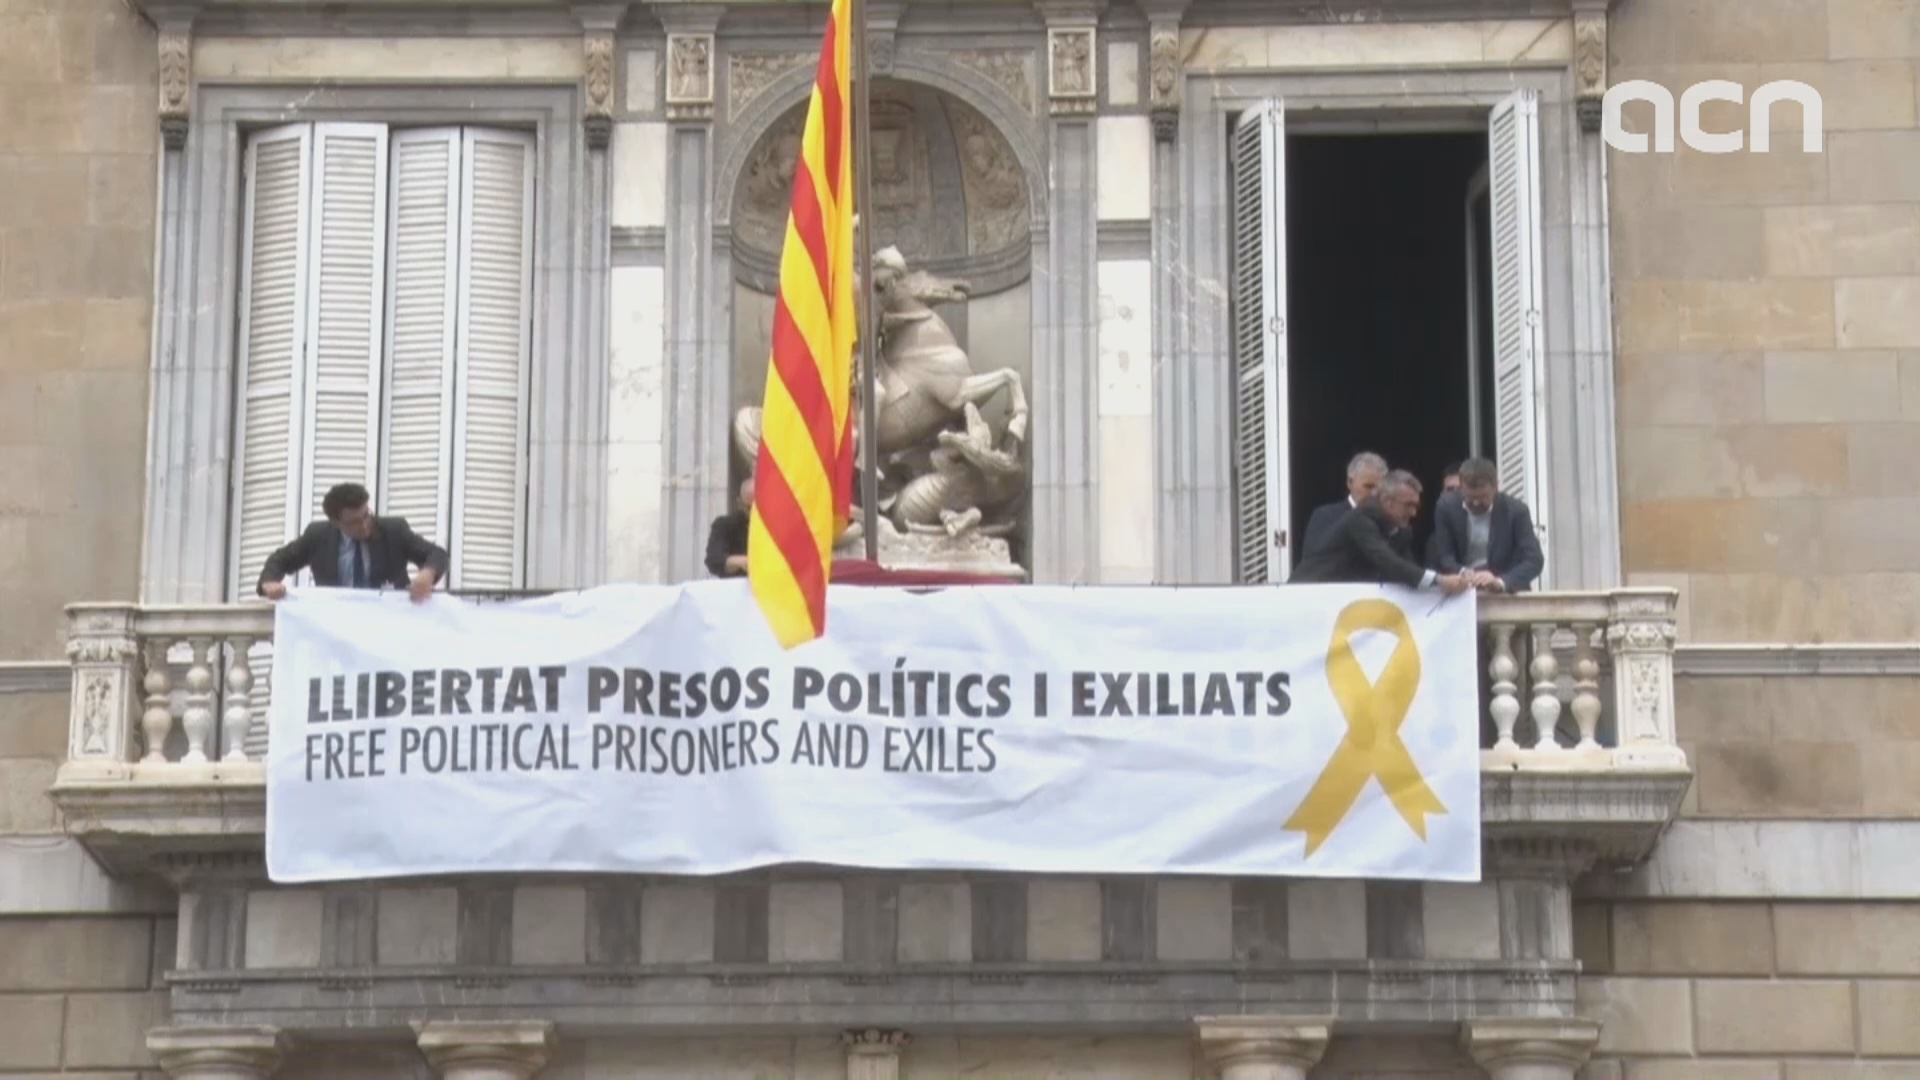 How the new Catalan government inauguration unfolded